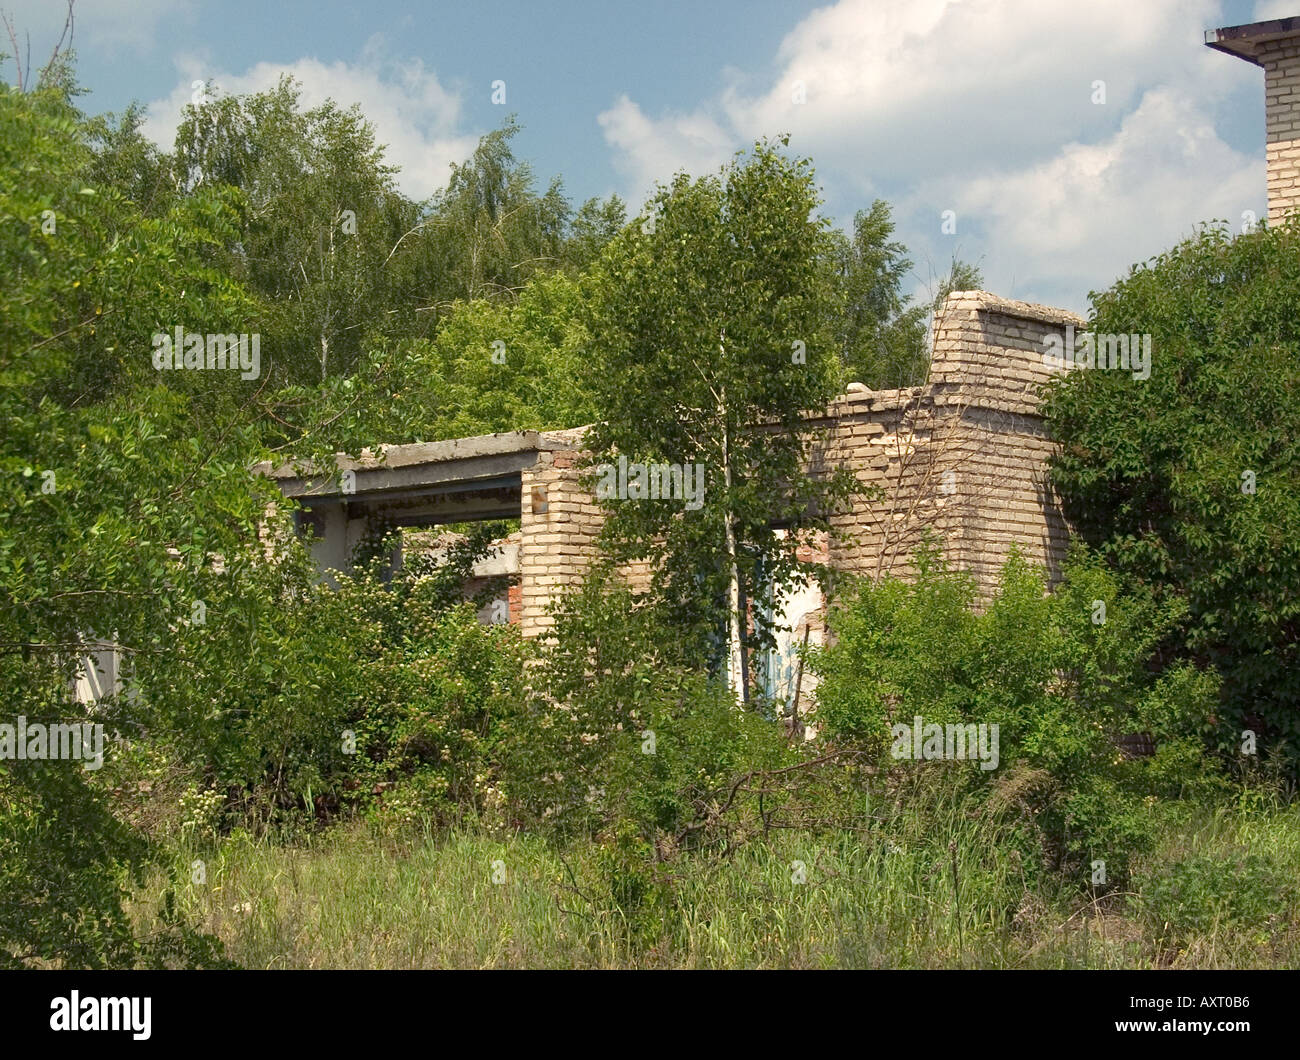 Ruins of brick buildings overgrown by trees in Chernobyl exclusion zone Ukraine Belarus state border - Stock Image